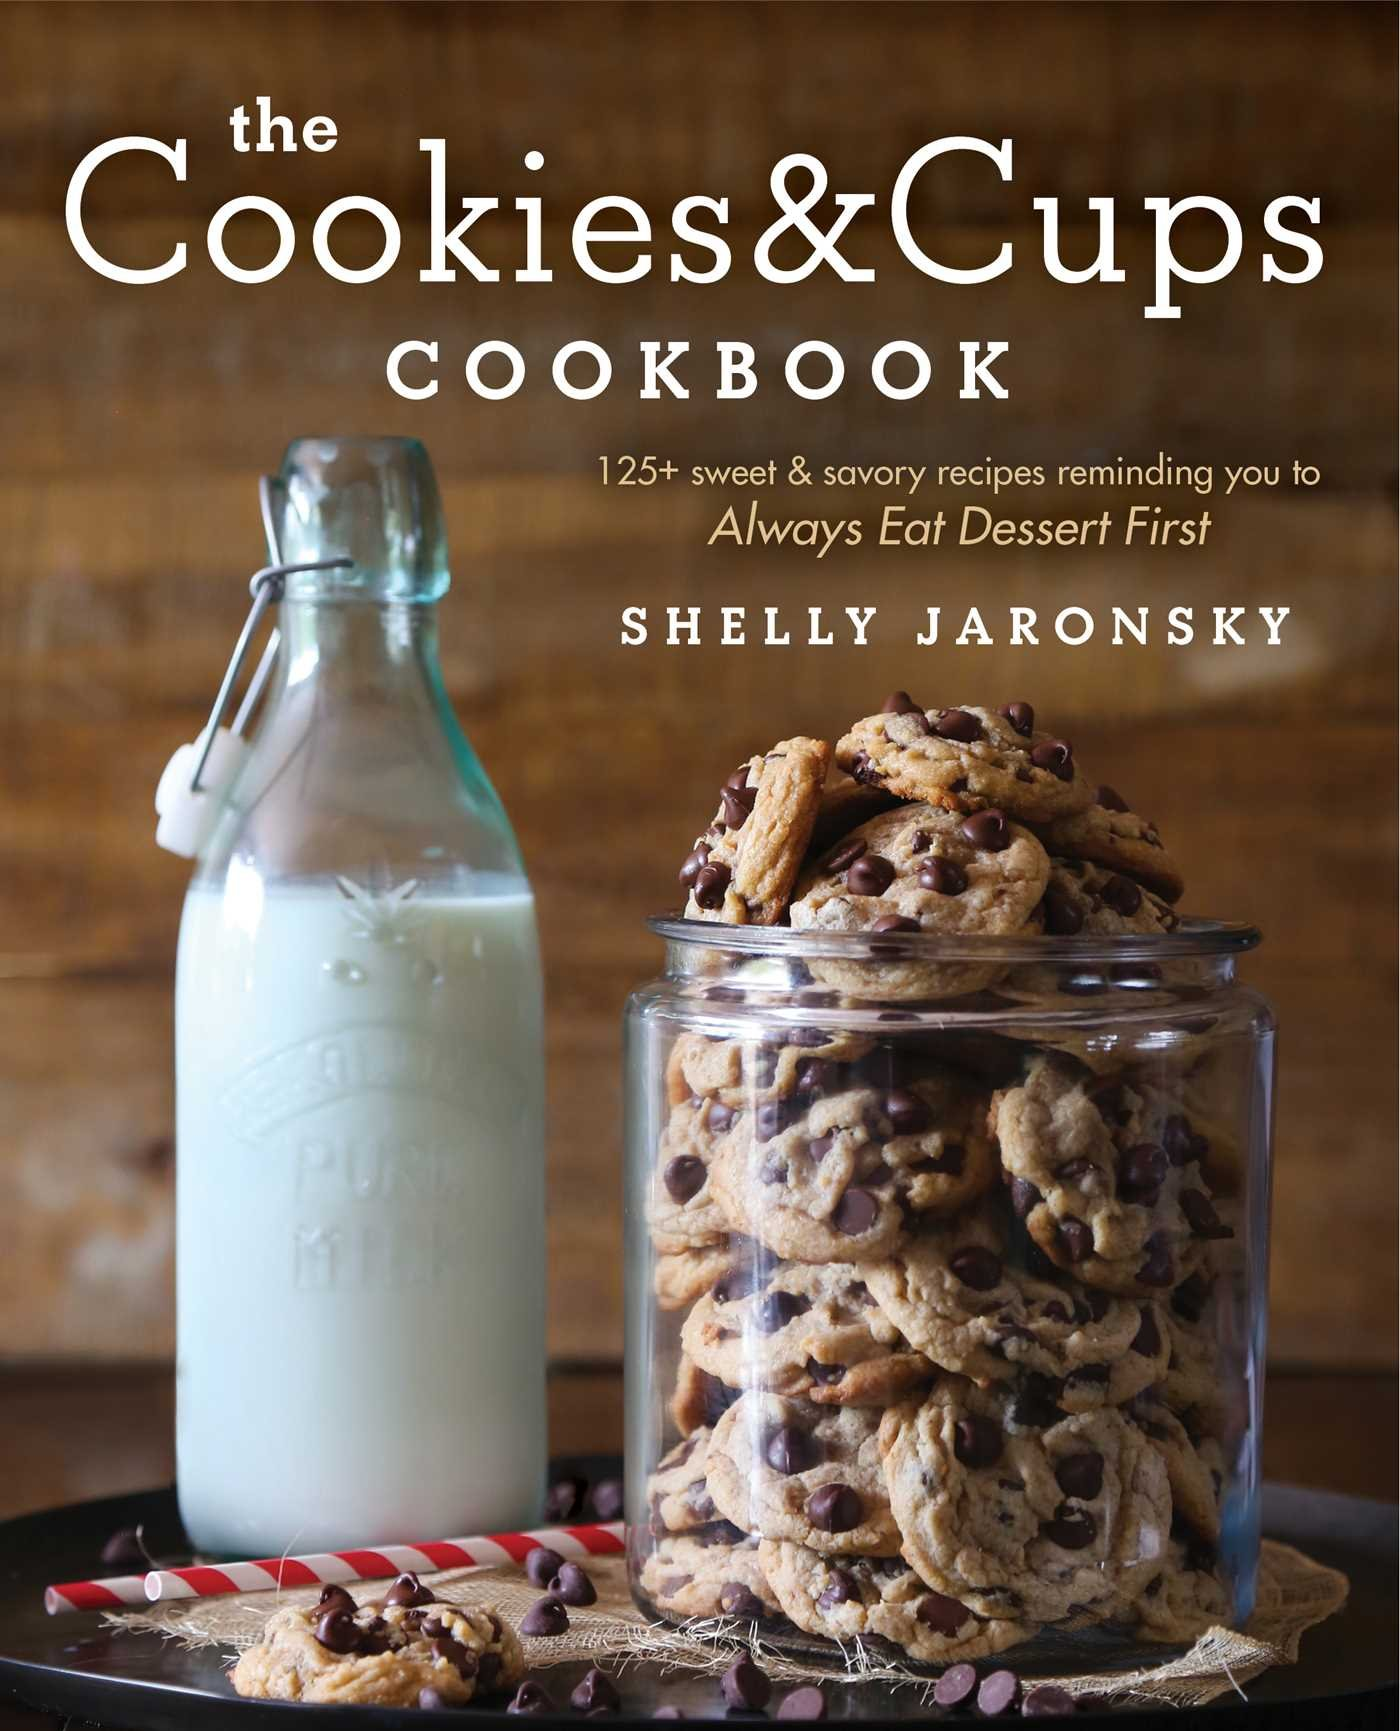 The cookies cups cookbook 125 sweet savory recipes reminding the cookies cups cookbook 125 sweet savory recipes reminding you to always eat dessert first shelly jaronsky 9781501102516 amazon books forumfinder Images